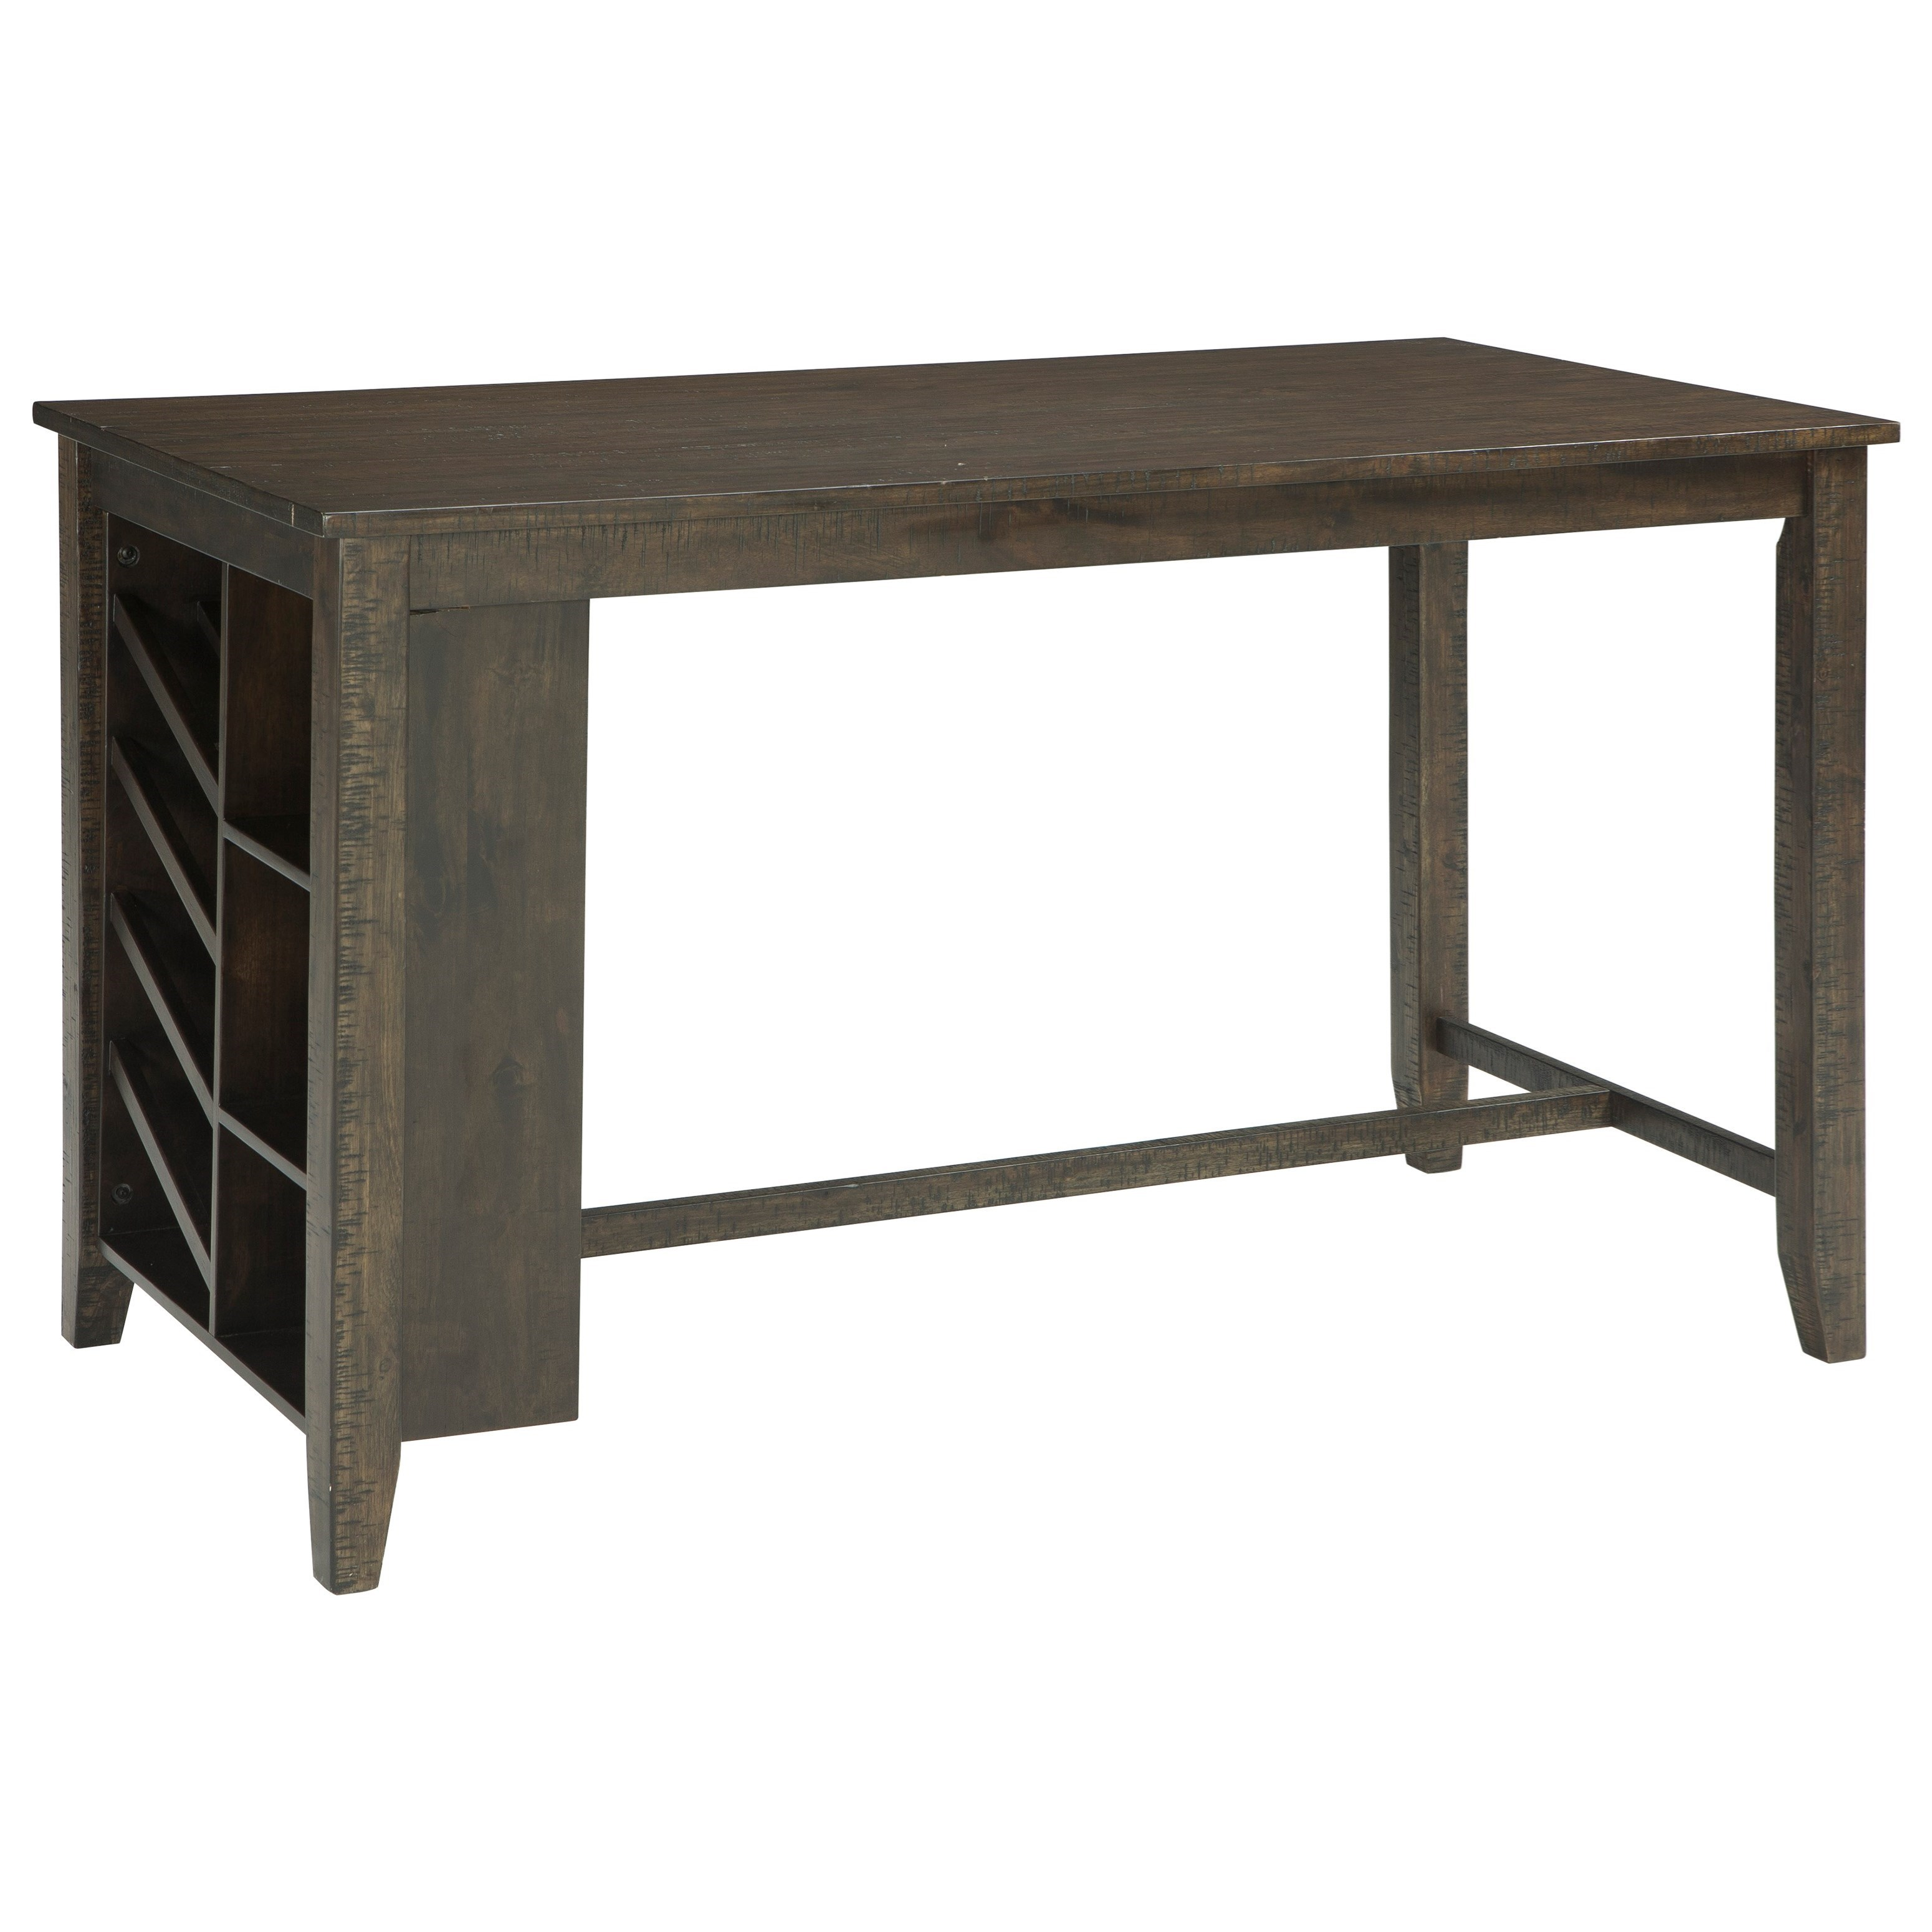 Rectangular Counter Table w/ Storage and Wine Rack